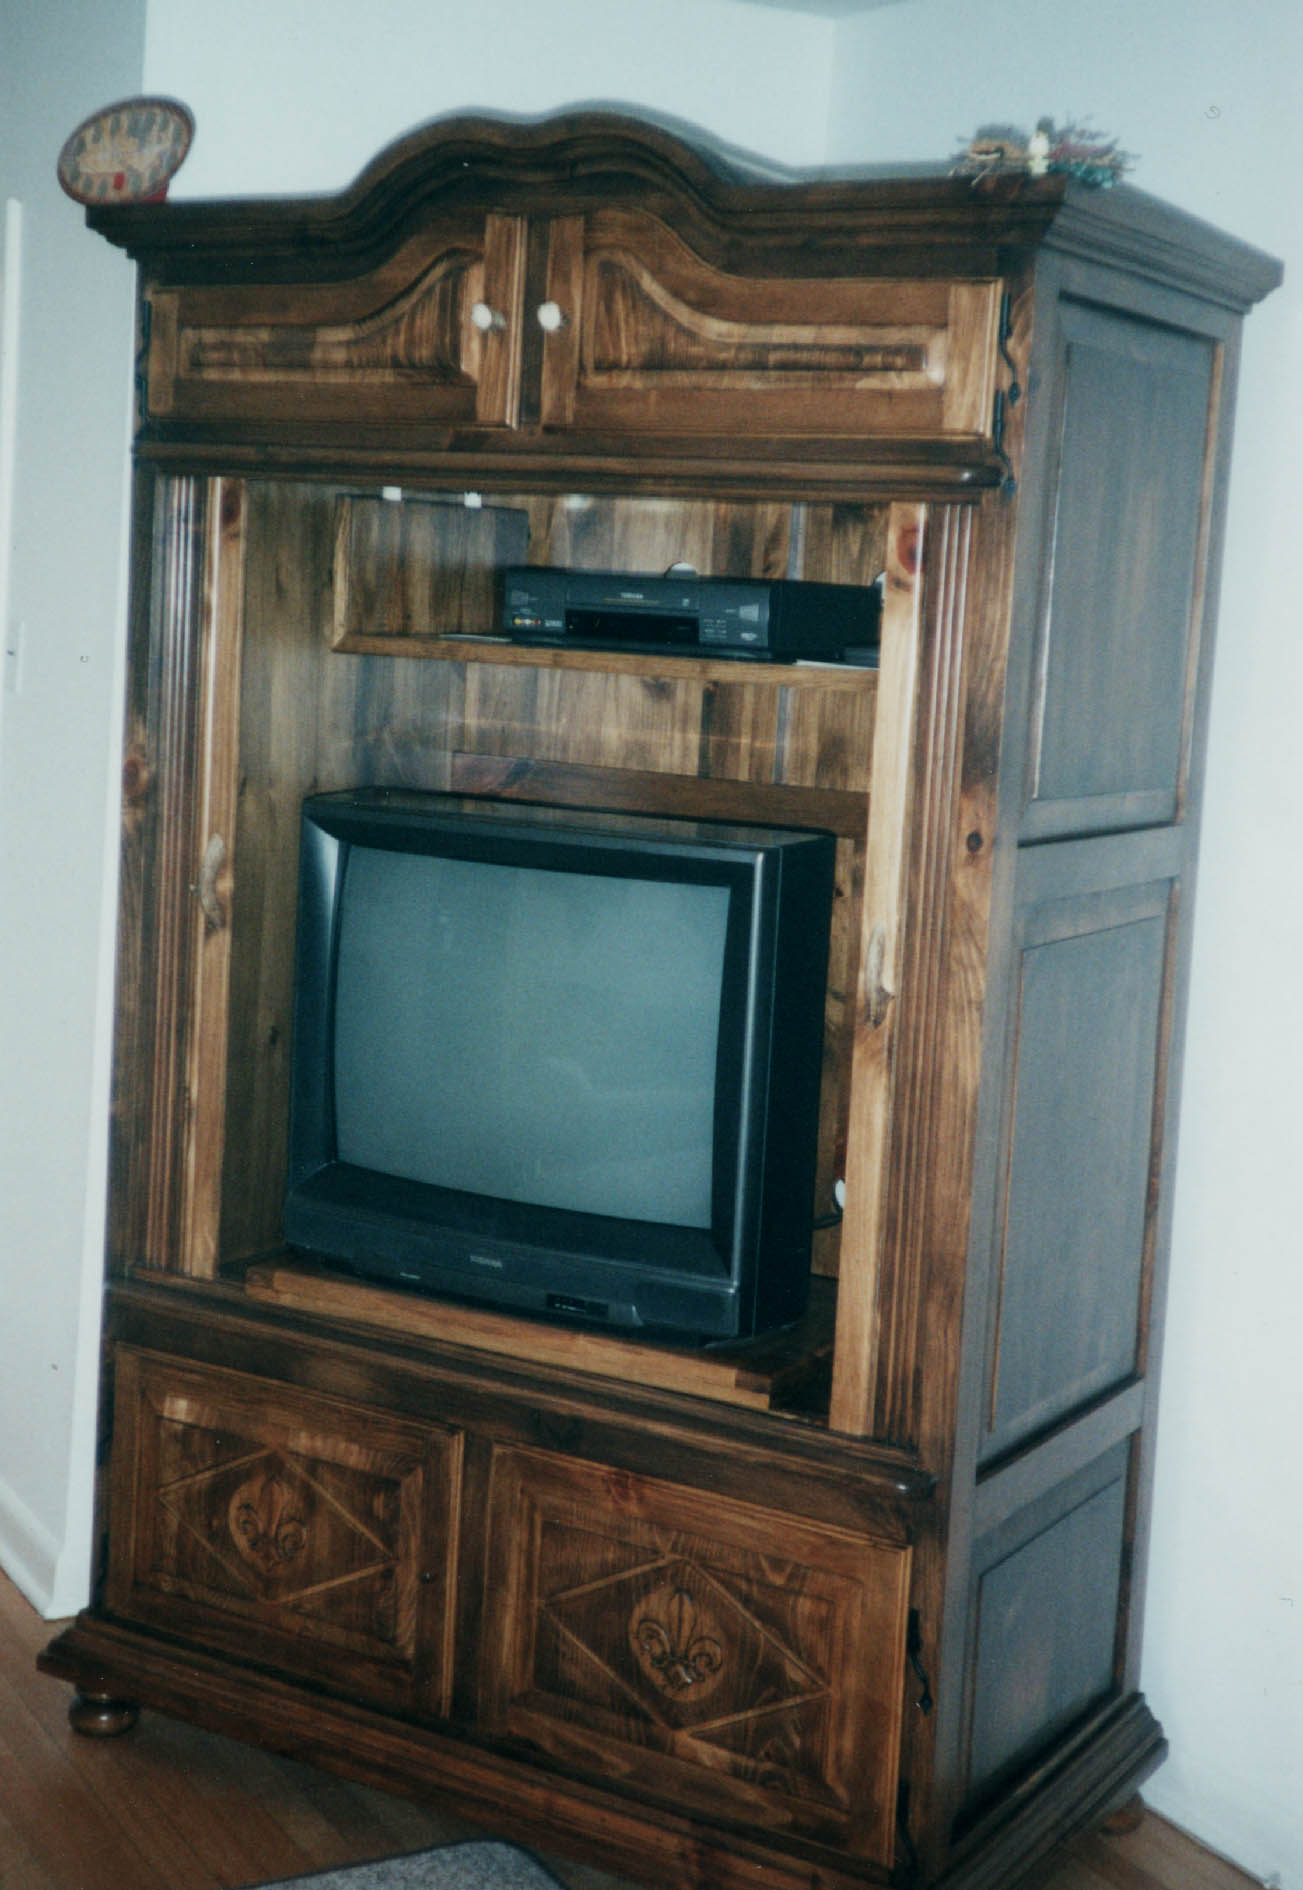 ... Armoire TV Cabinet Open (205777 Bytes)